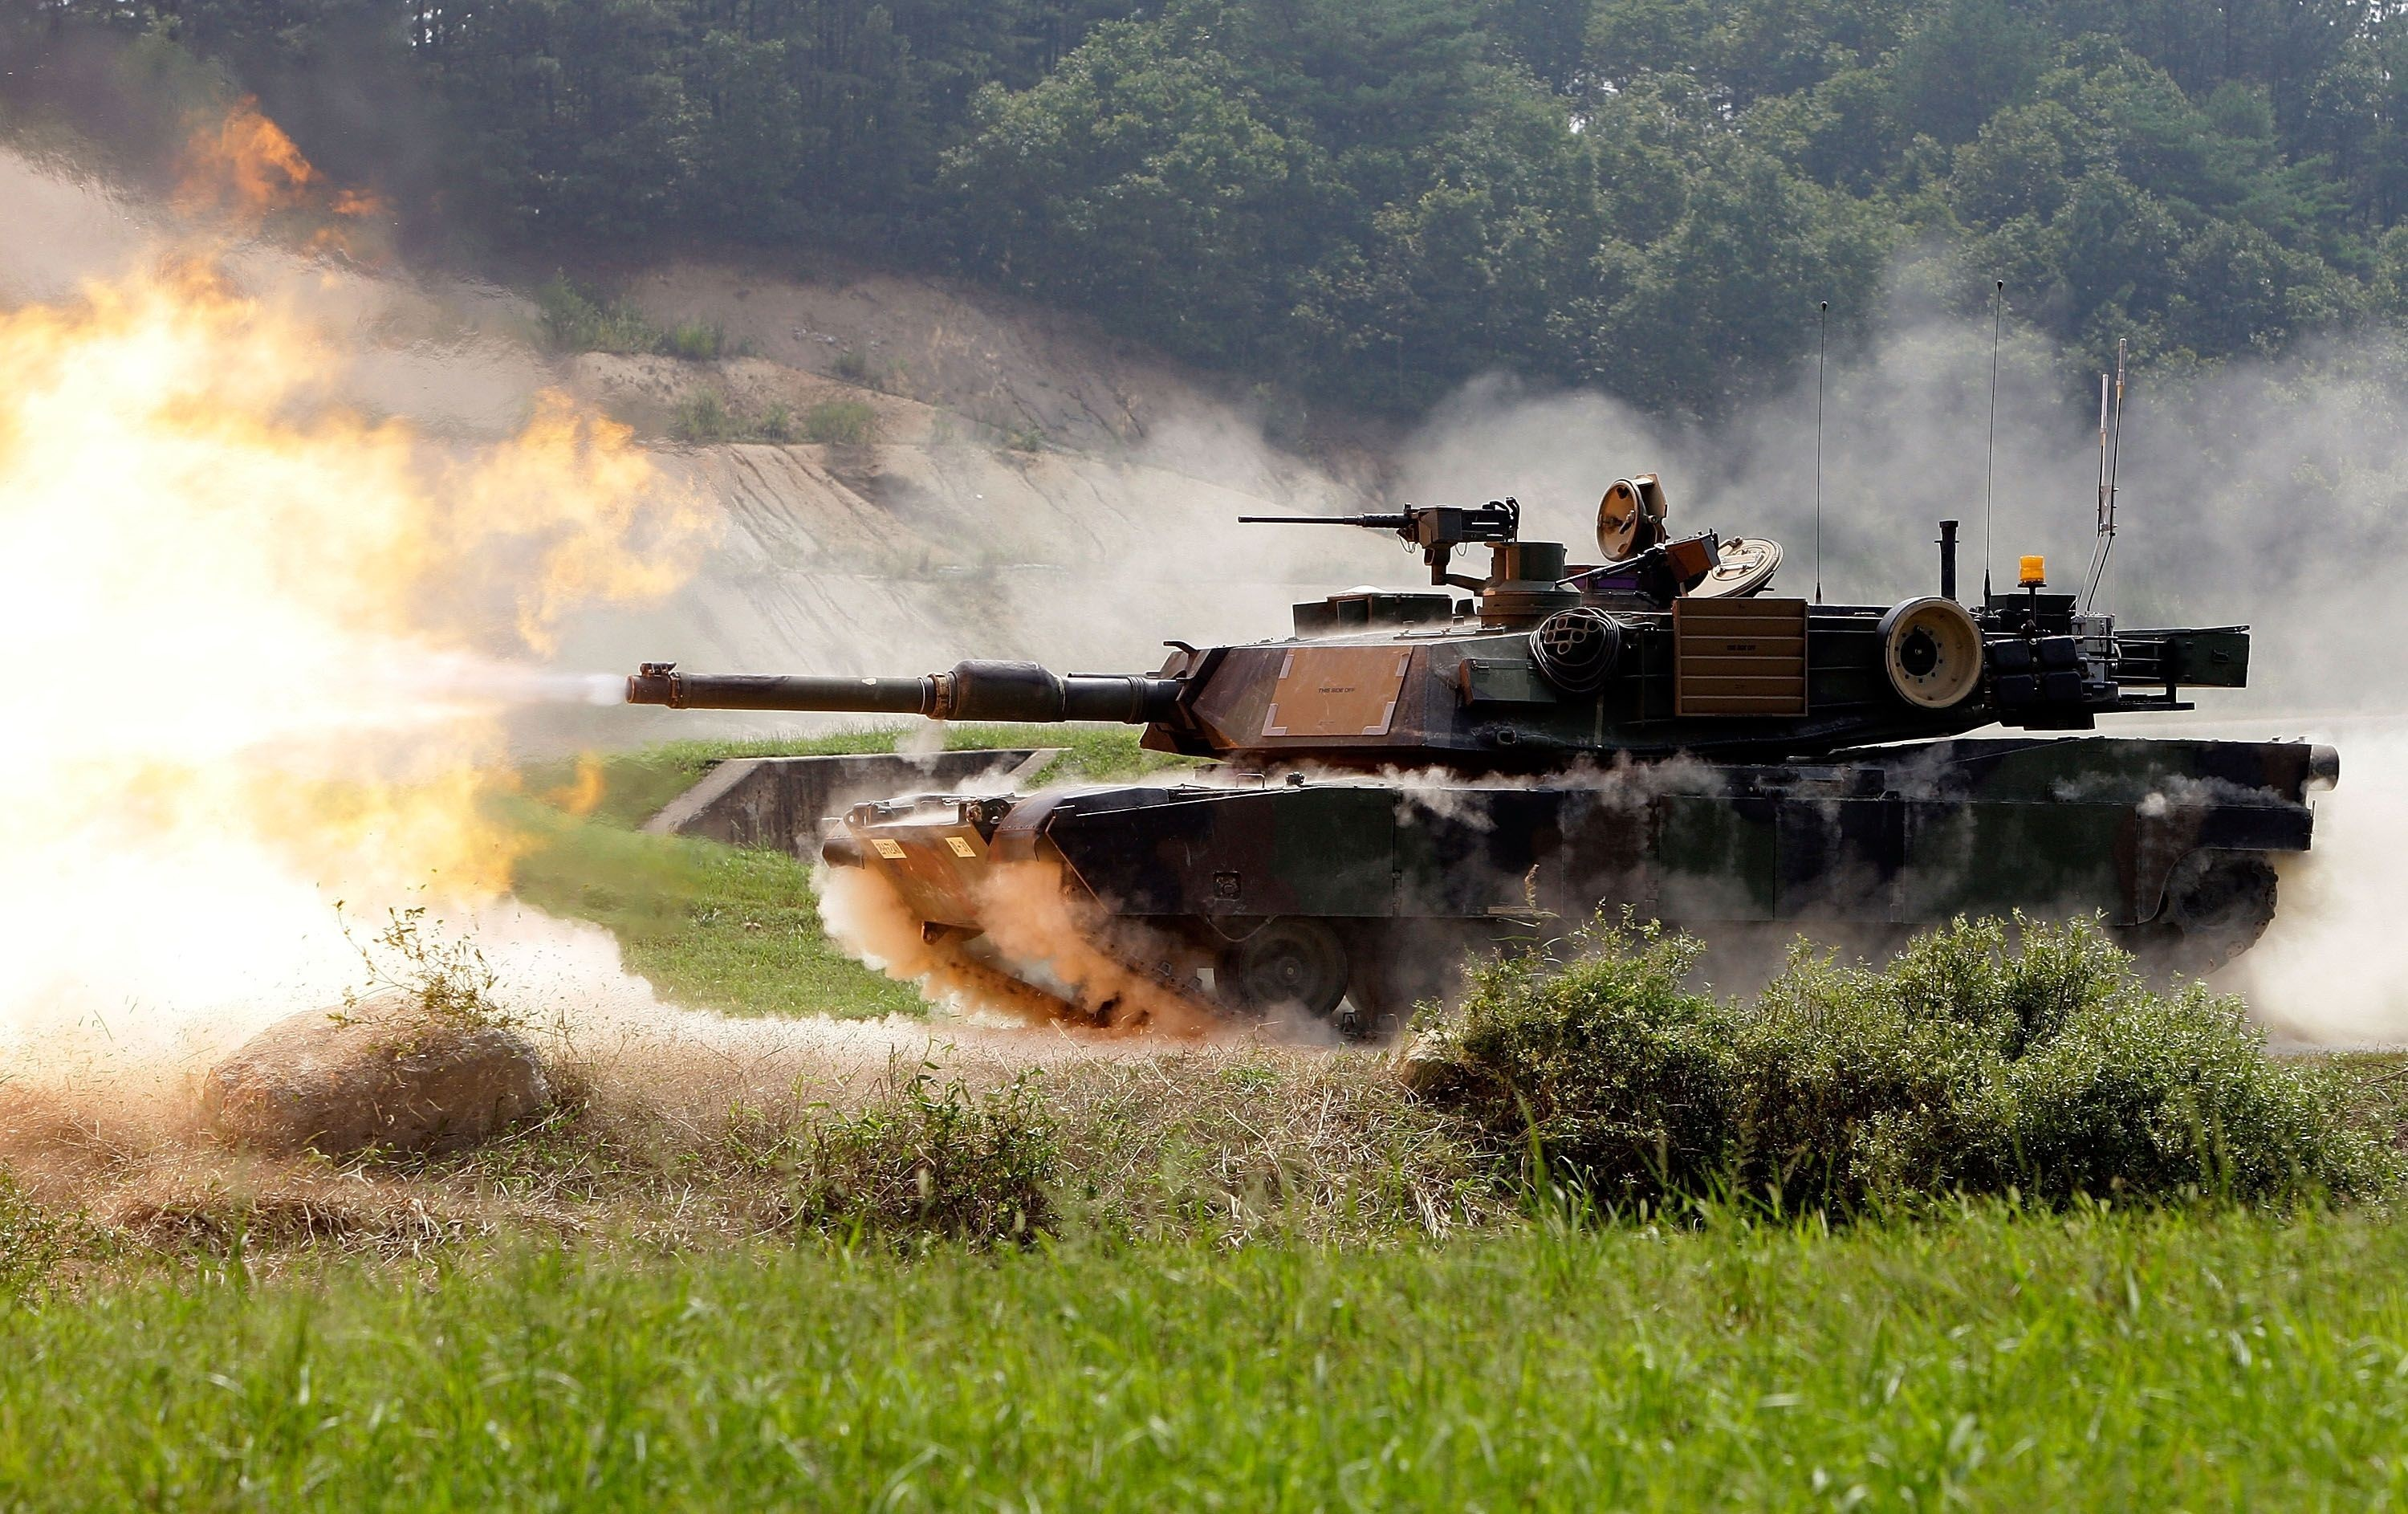 3000x1886 Tiger Tank HD Images Wallpapers 6275 - HD Wallpapers Site